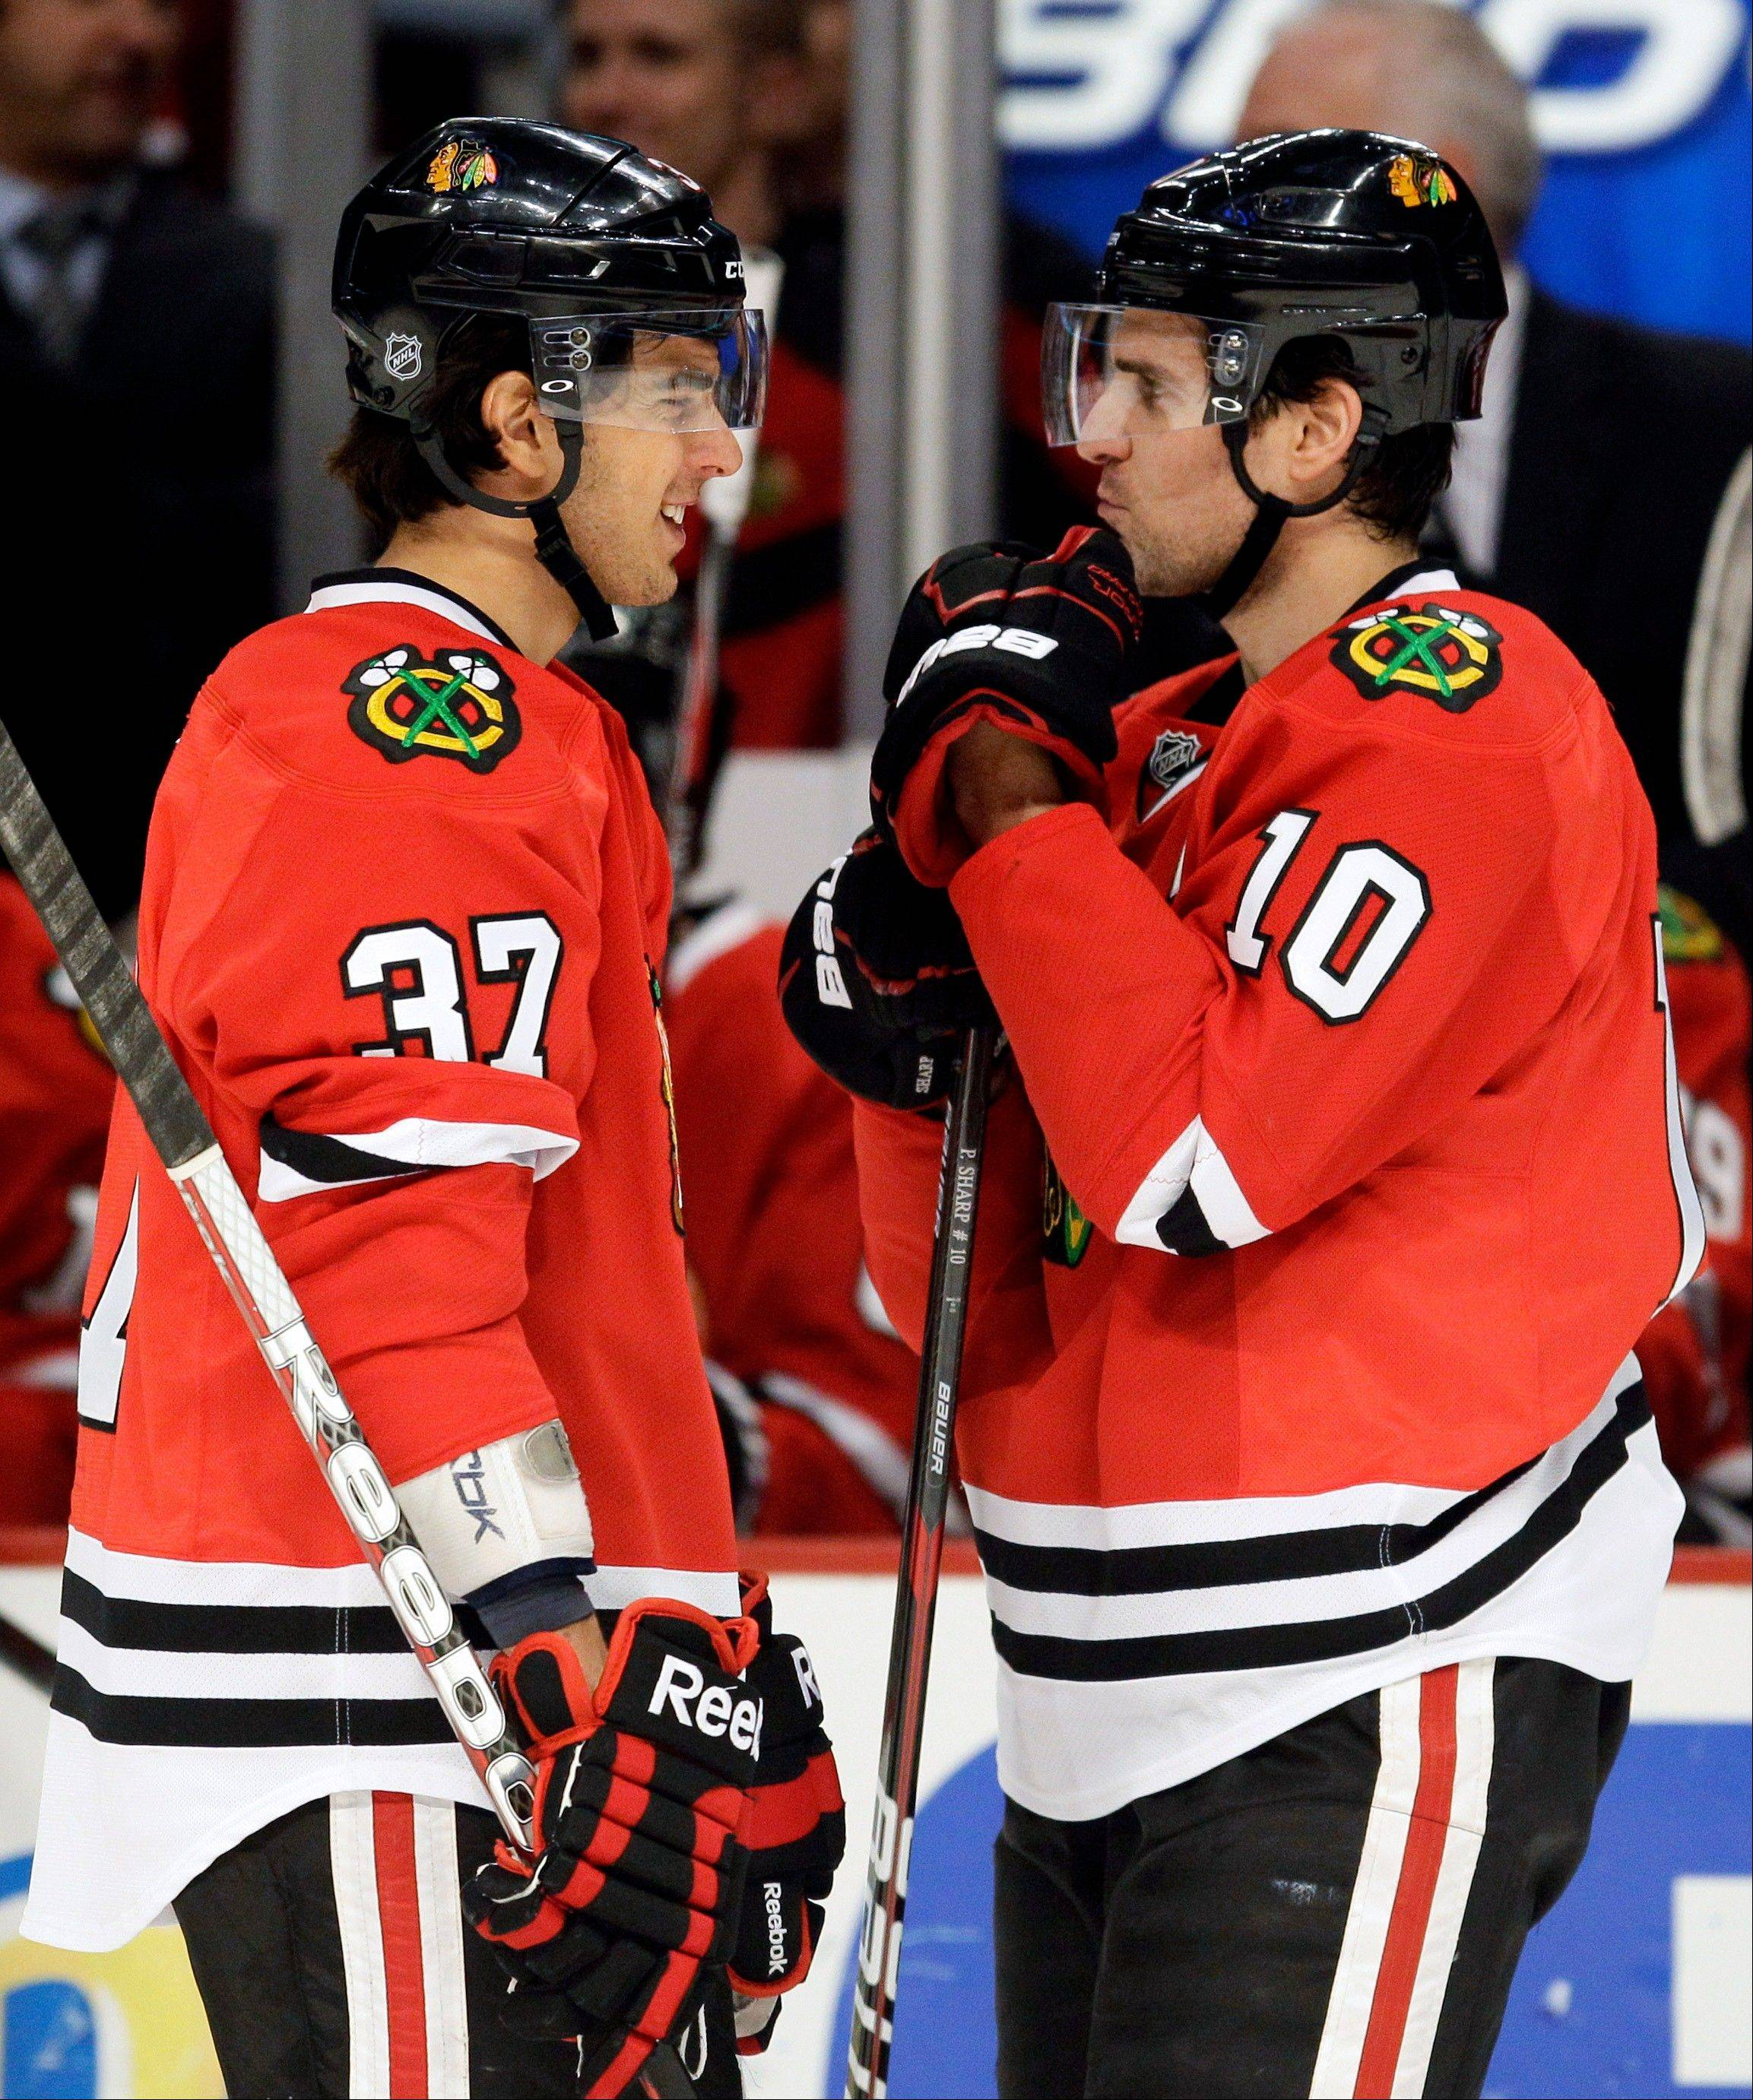 Blackhawks ready to open training camp, defend Cup